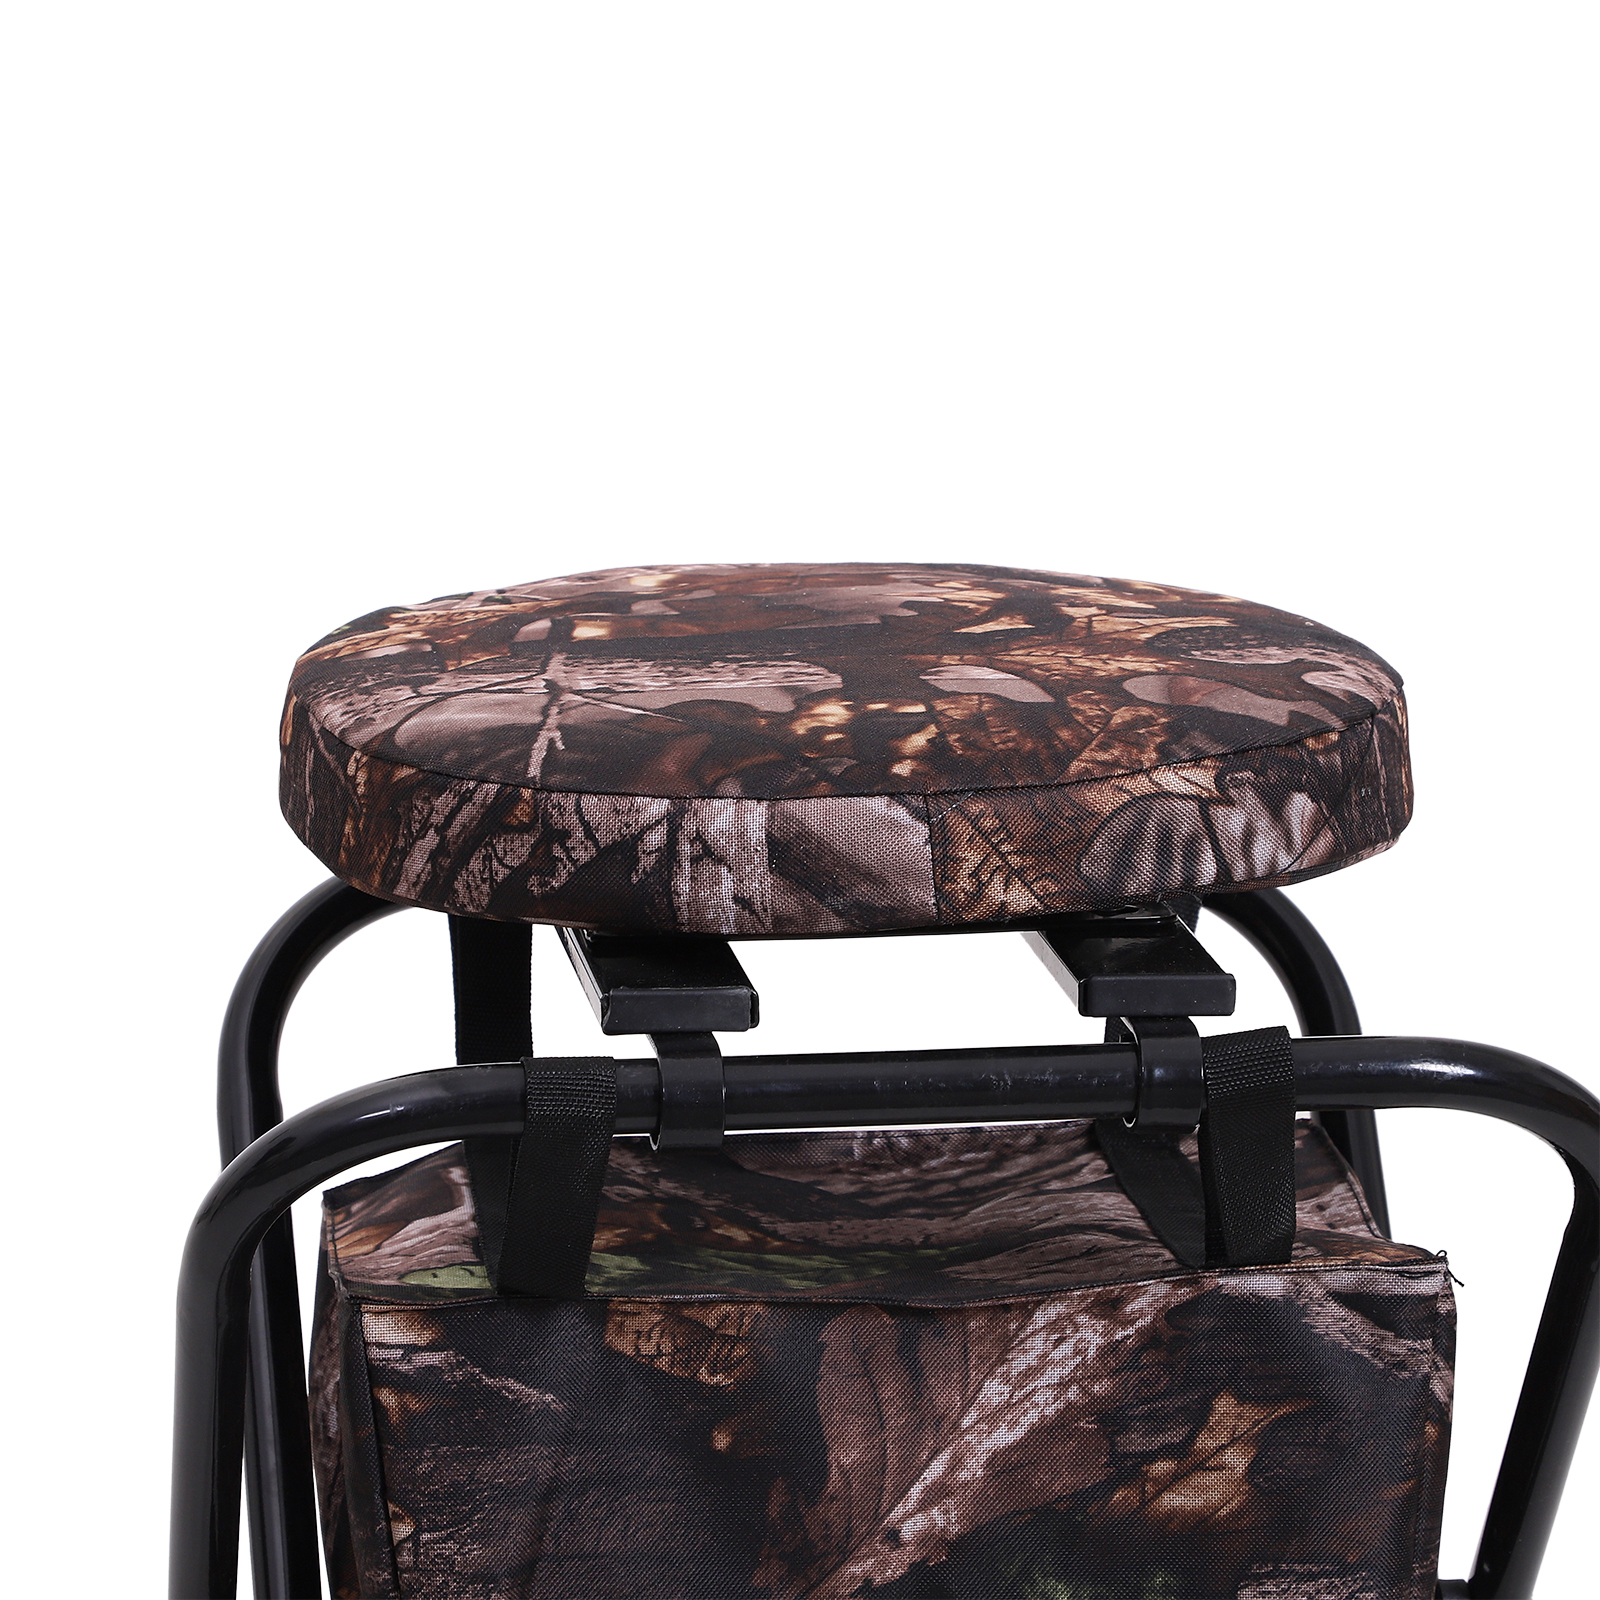 Outsunny-Folding-Rotating-Travel-Camping-Stool-for-Adults-w-Storage-Bag thumbnail 12